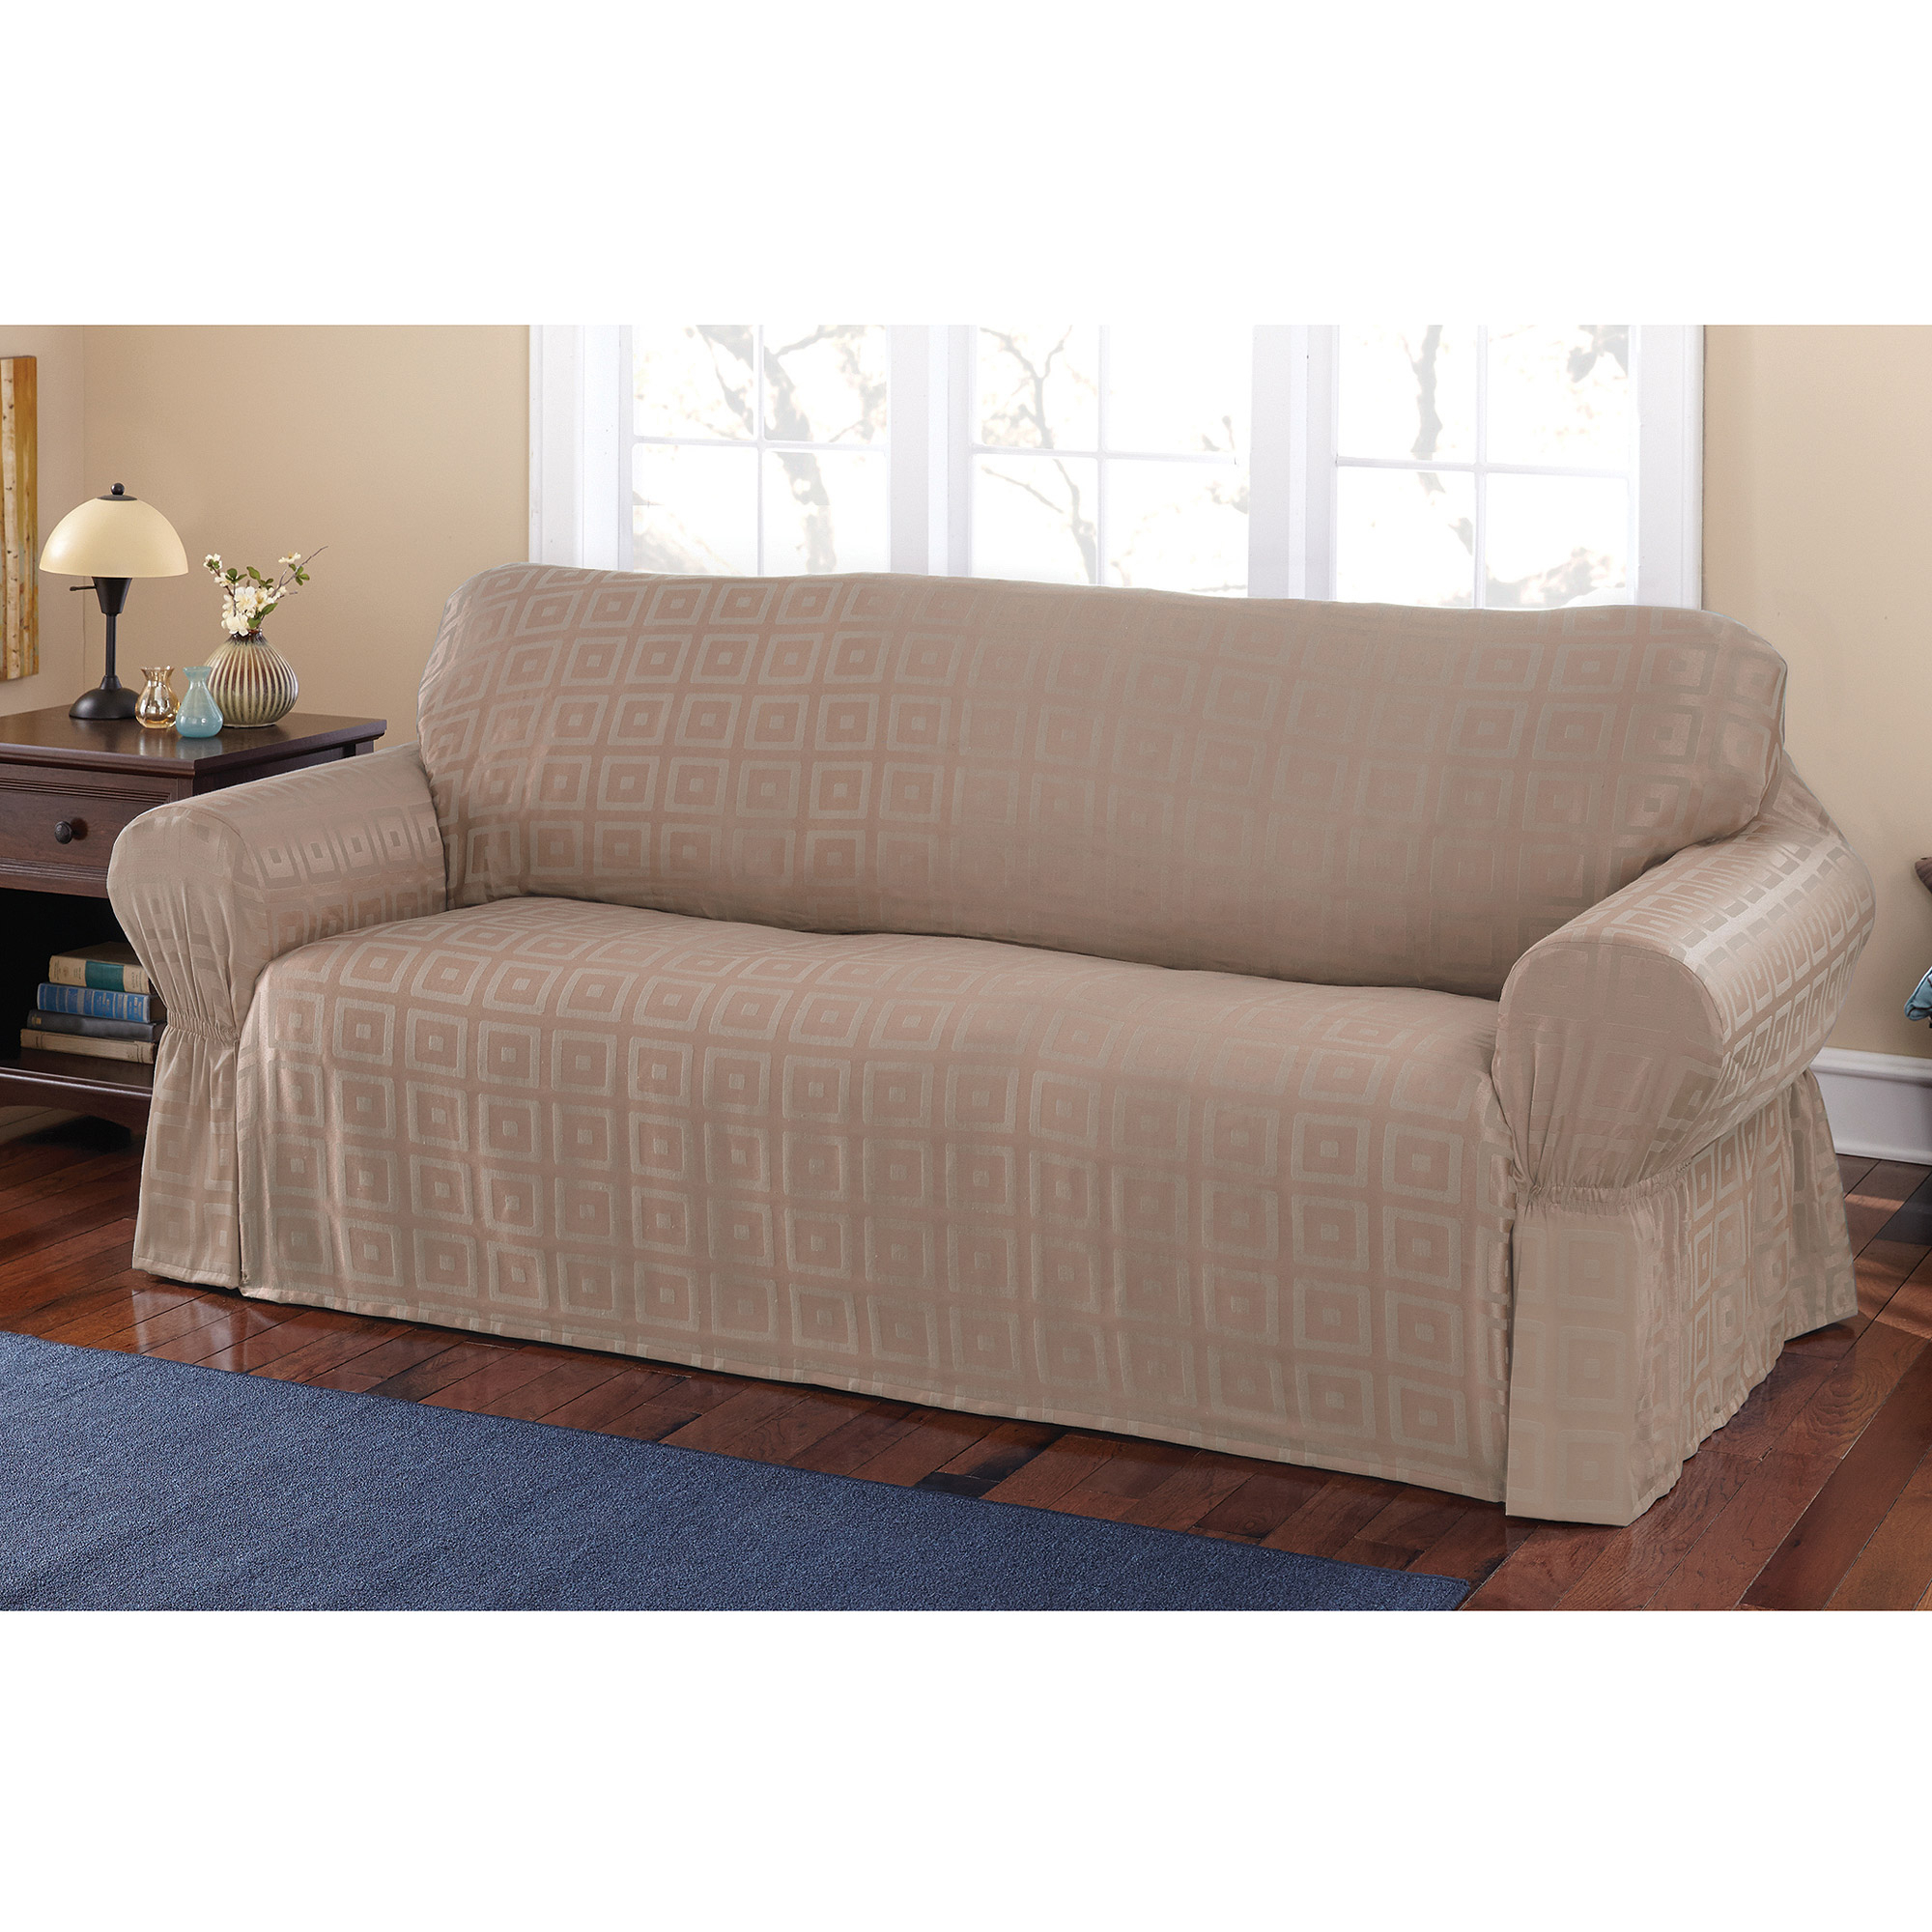 Mainstays Sherwood Slipcover Sofa – Walmart Within Current Slipcovers For Sofas And Chairs (View 9 of 20)